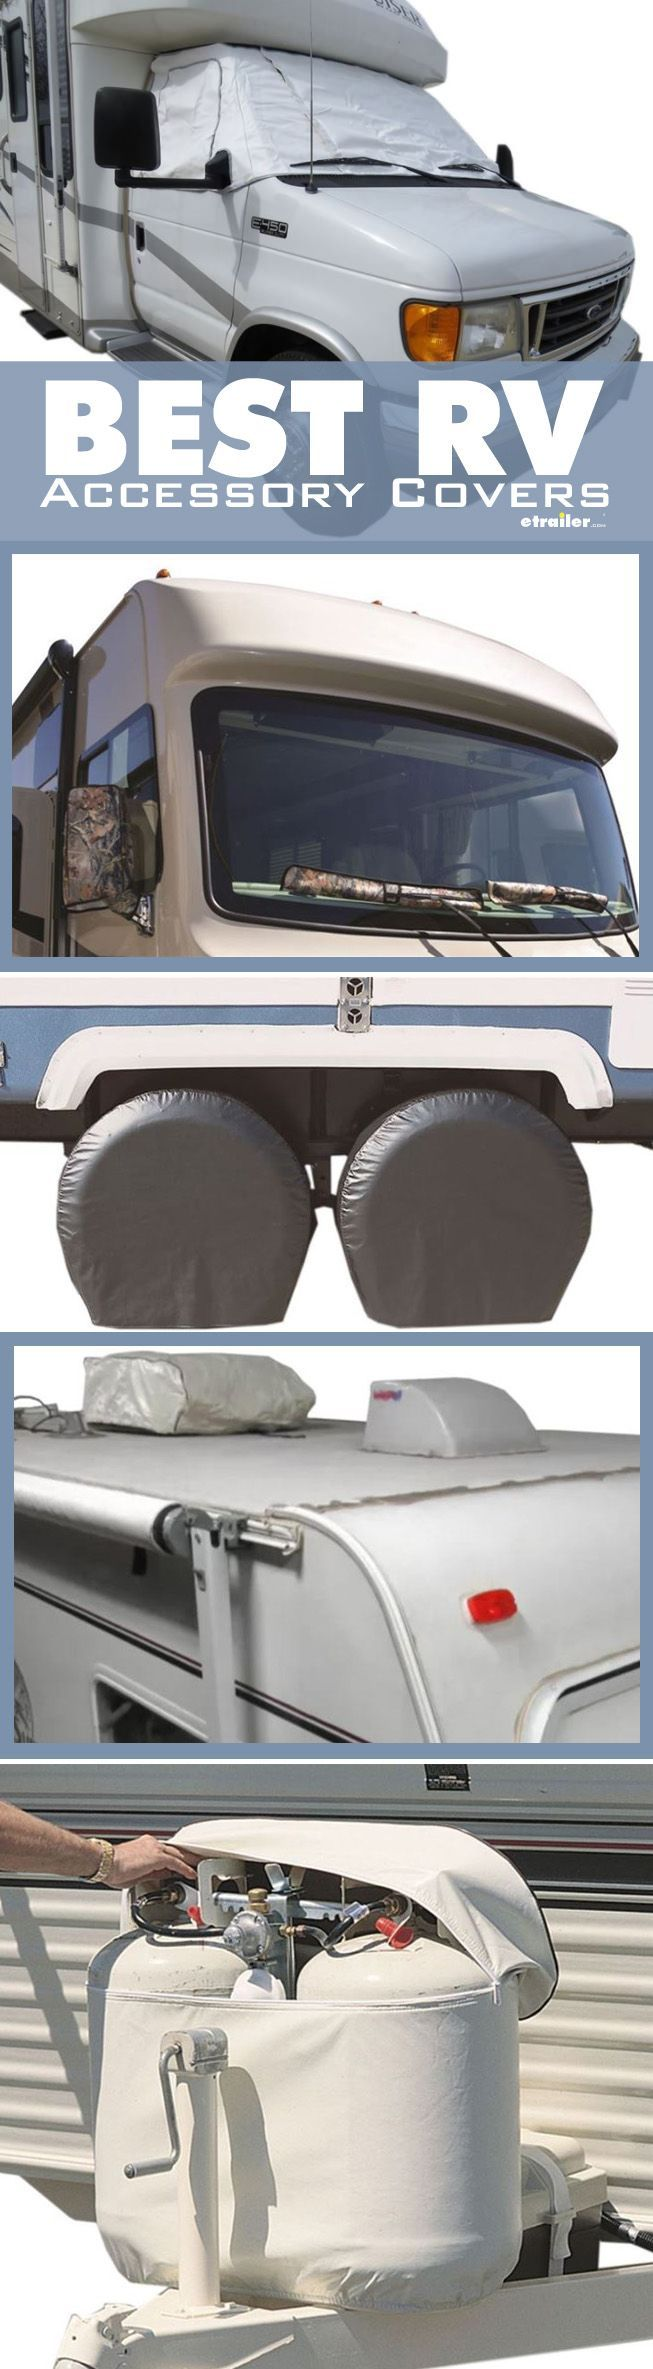 In addition to covering your camper while in storage